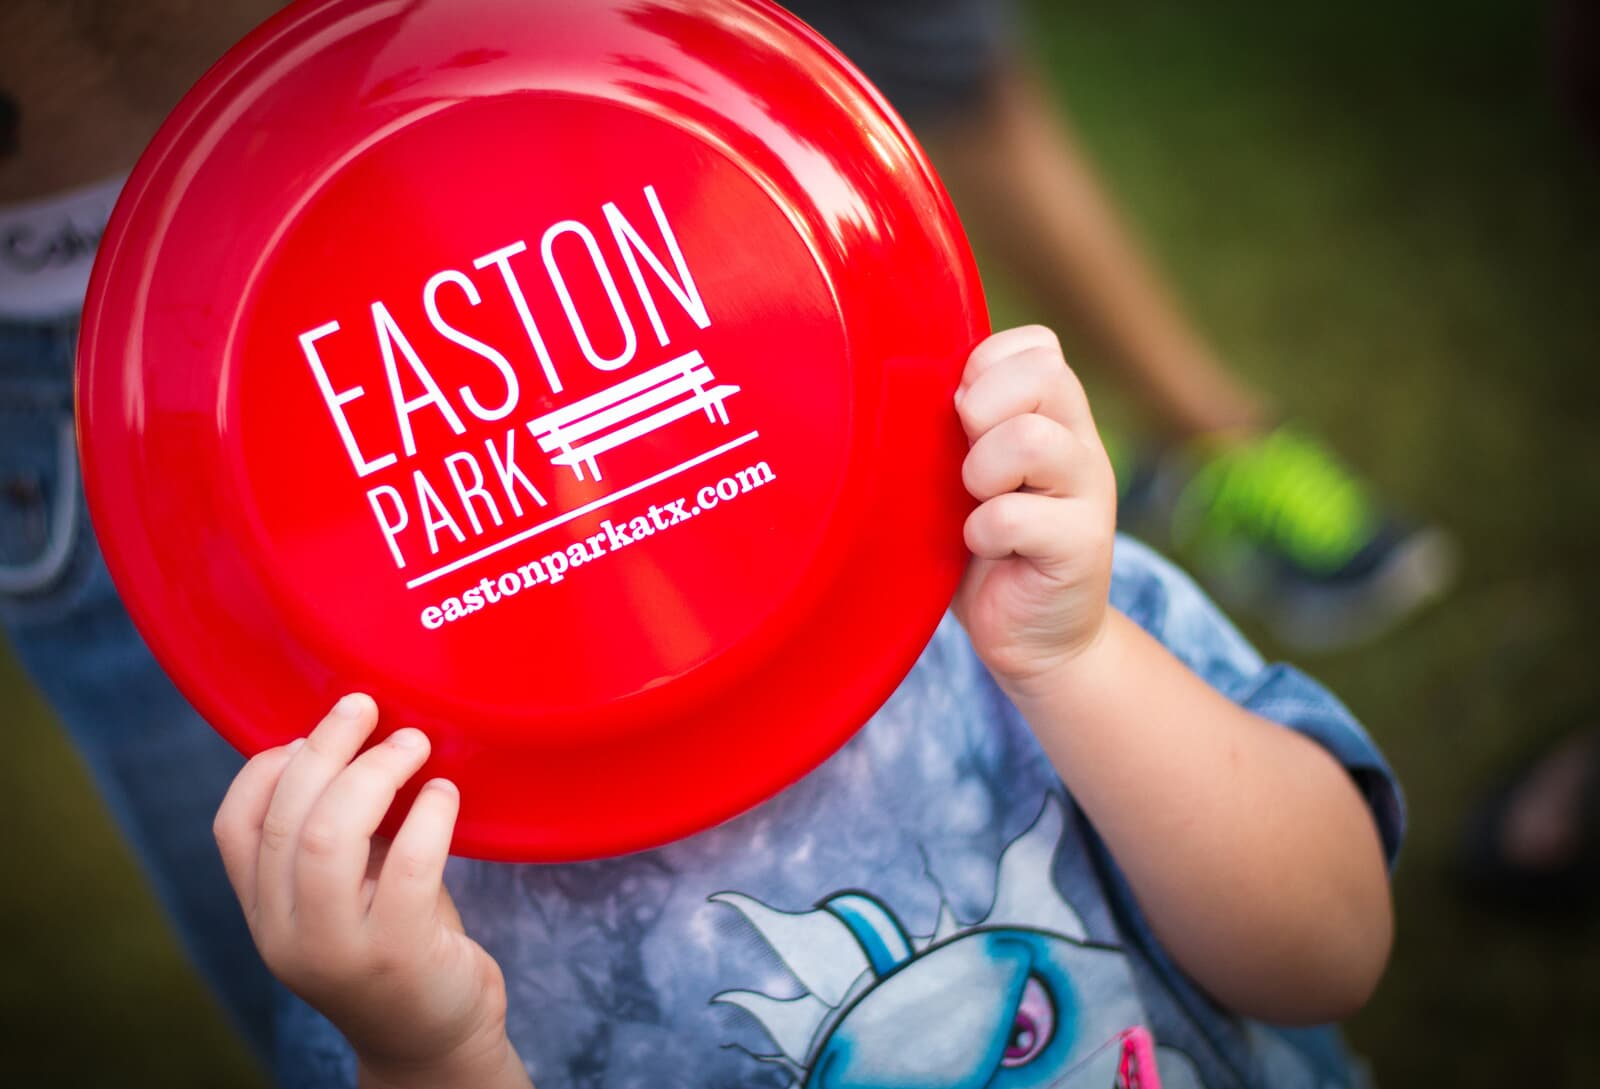 frisbee-easton-park-austin-texas